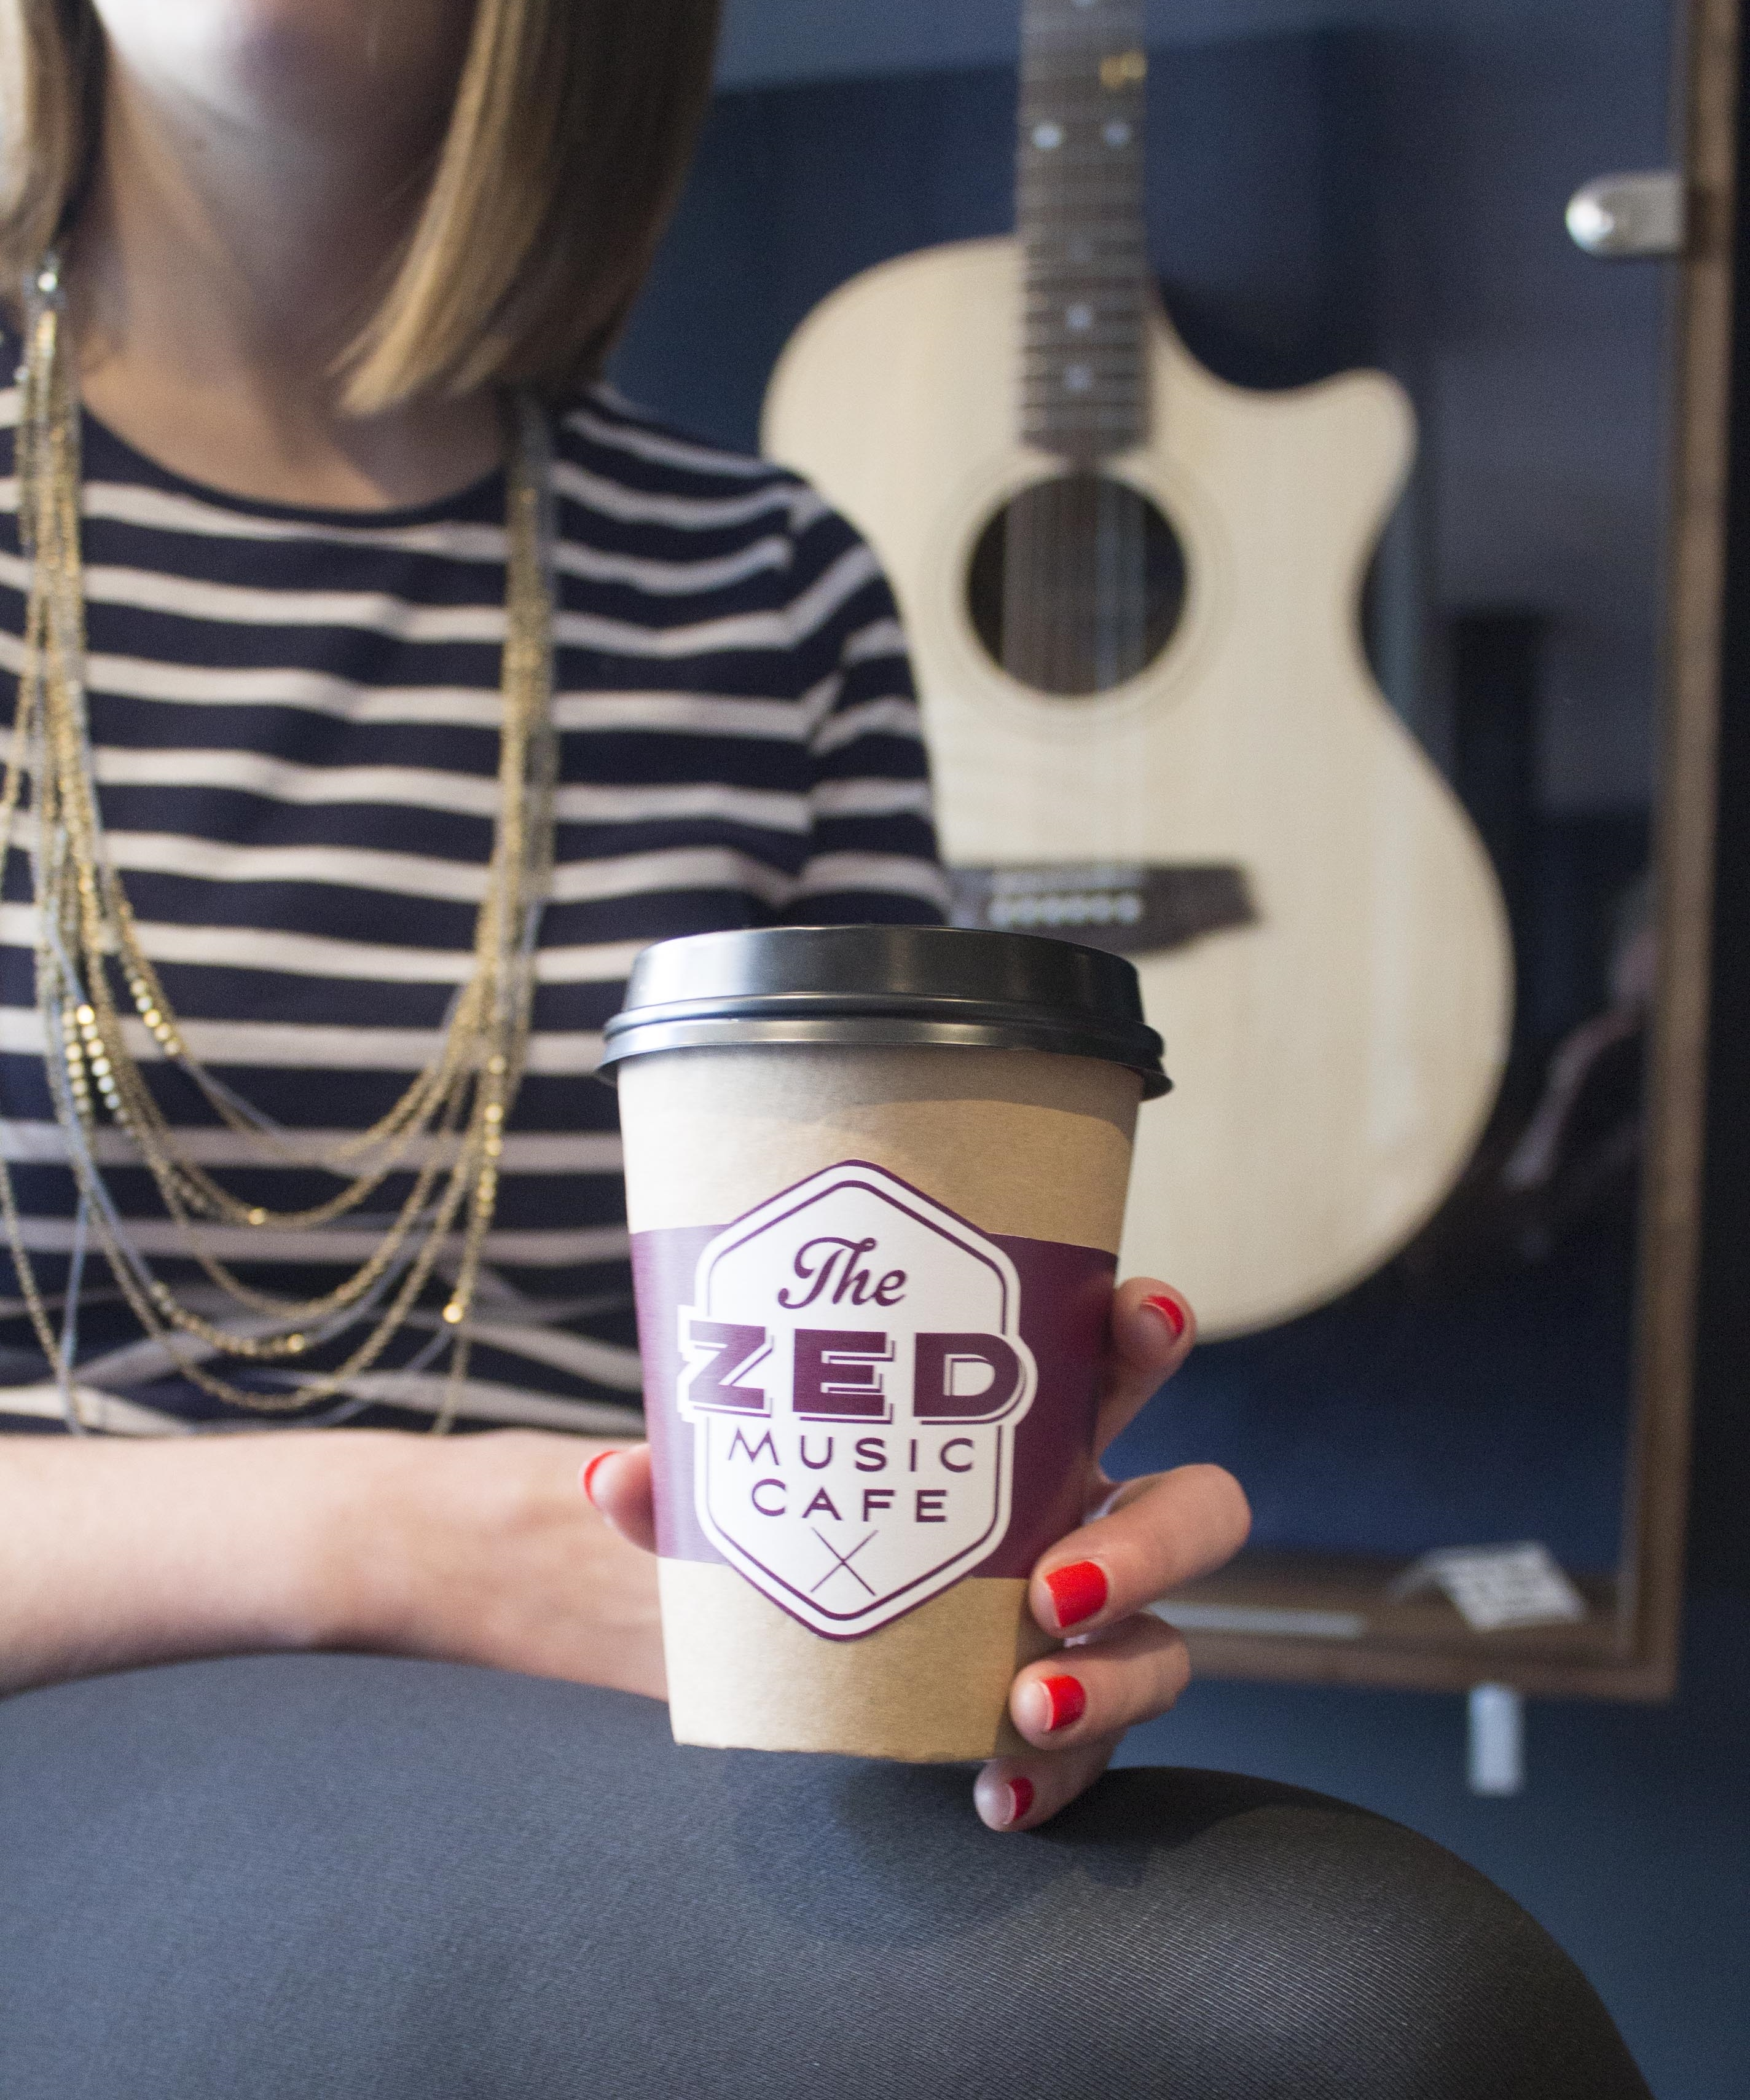 Zed Music Cafe Sevenoaks, brand design by Ditto Brand Stylists